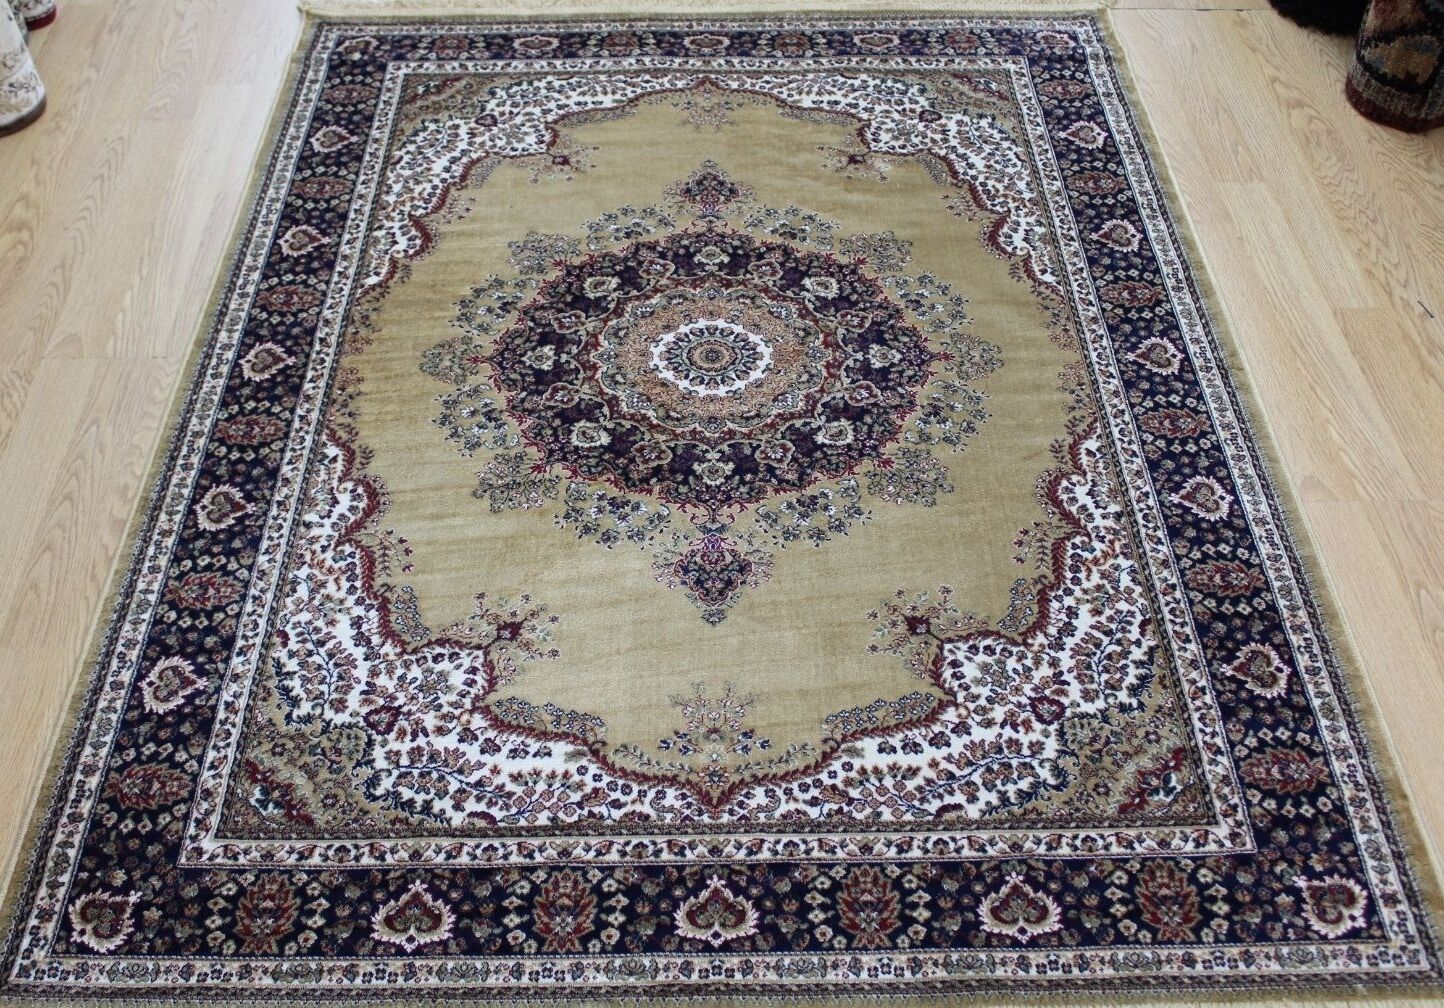 Gold Soie Bleu Traditionnel Persan Oriental Design Lavable Tapis